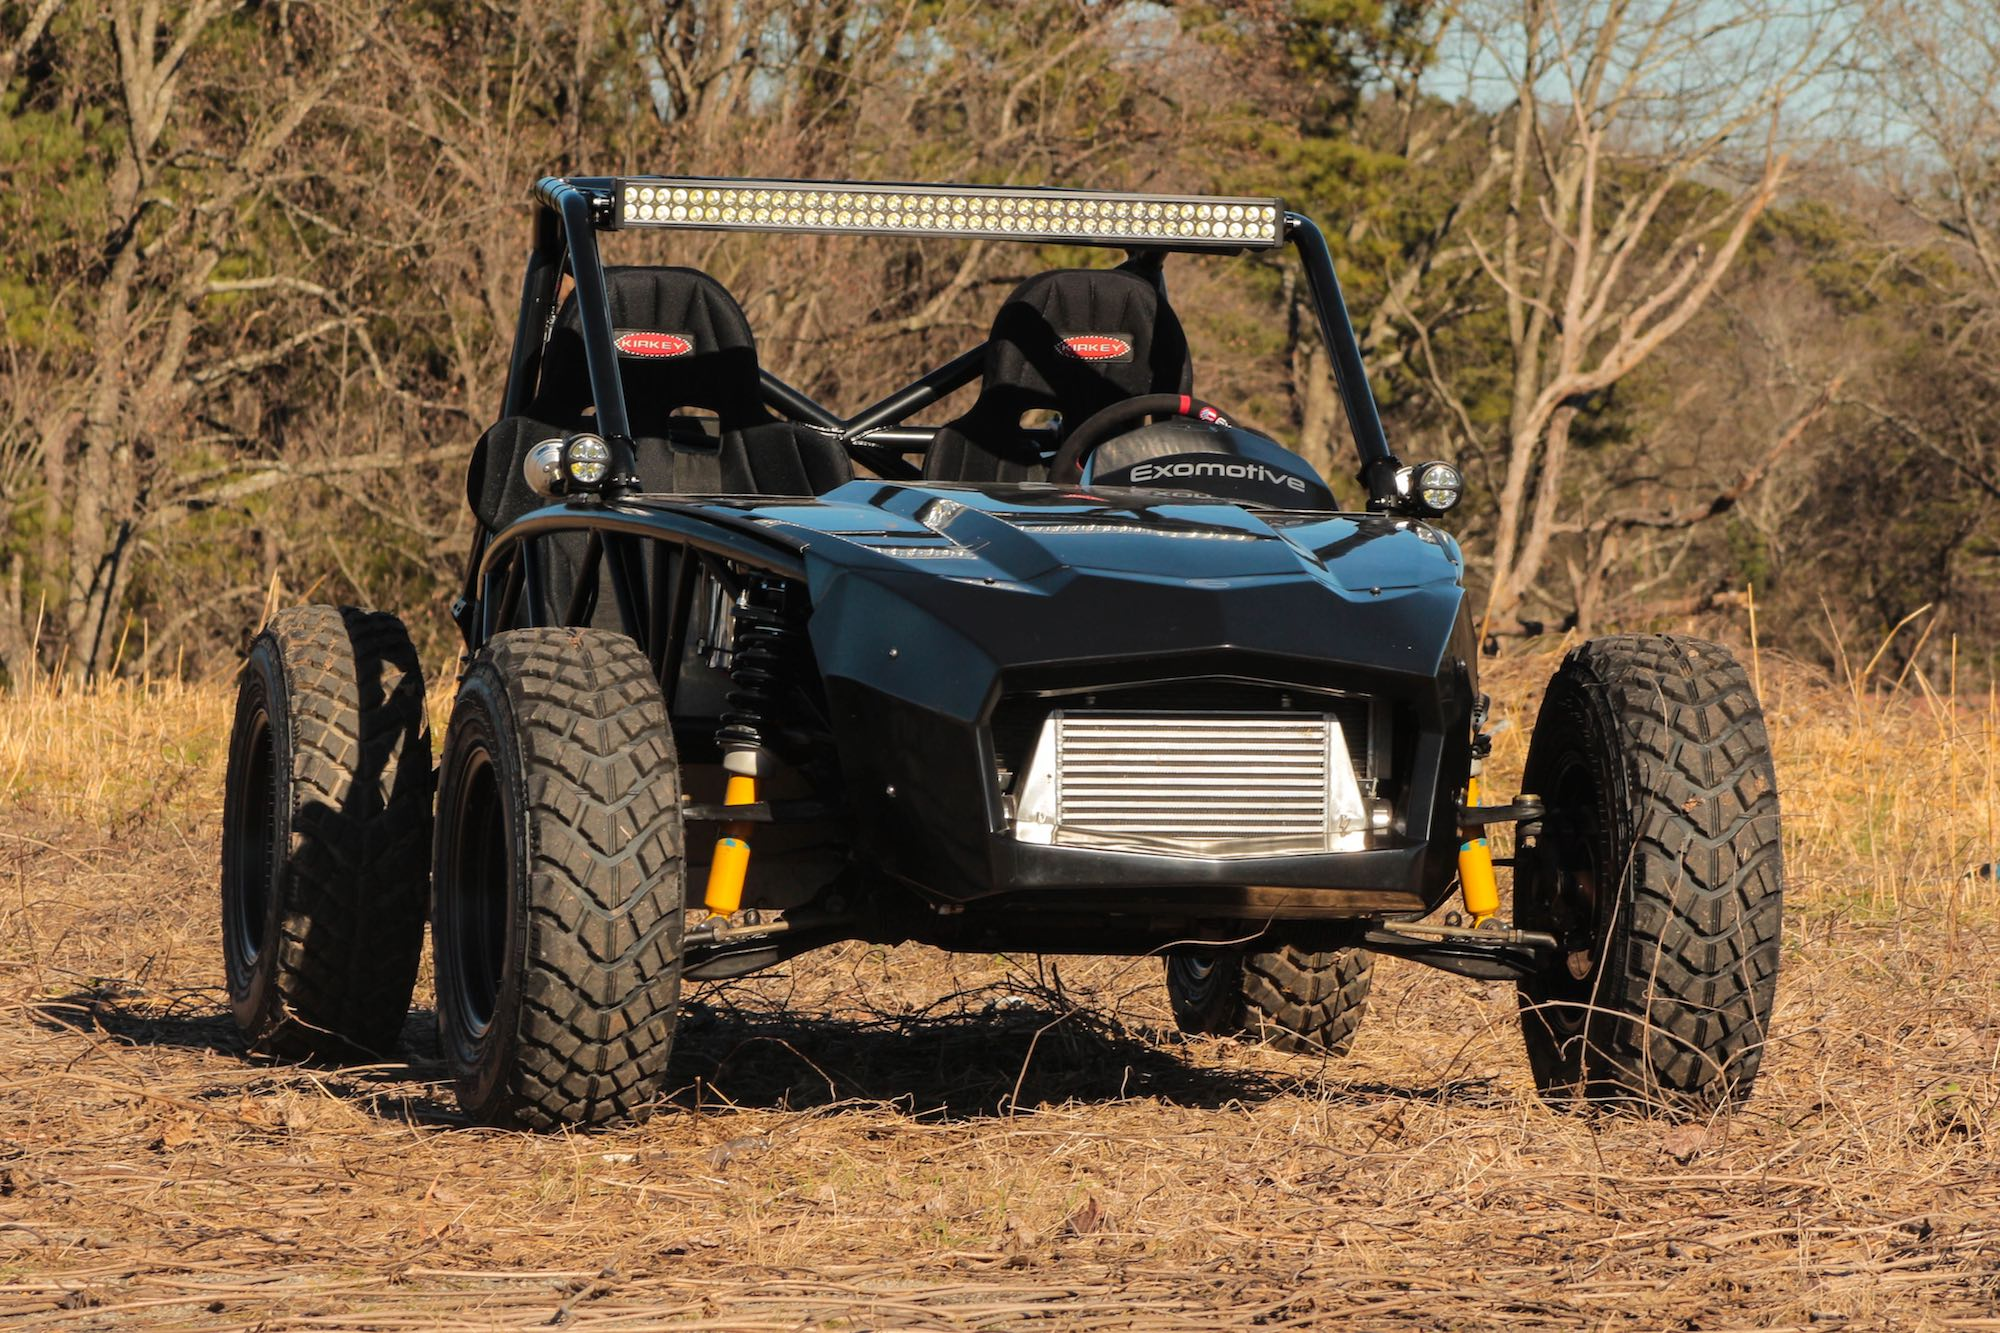 exocet-off-road-is-a-mazda-miata-based-go-anywhere-ariel-nomad-diy-replica_10.jpg